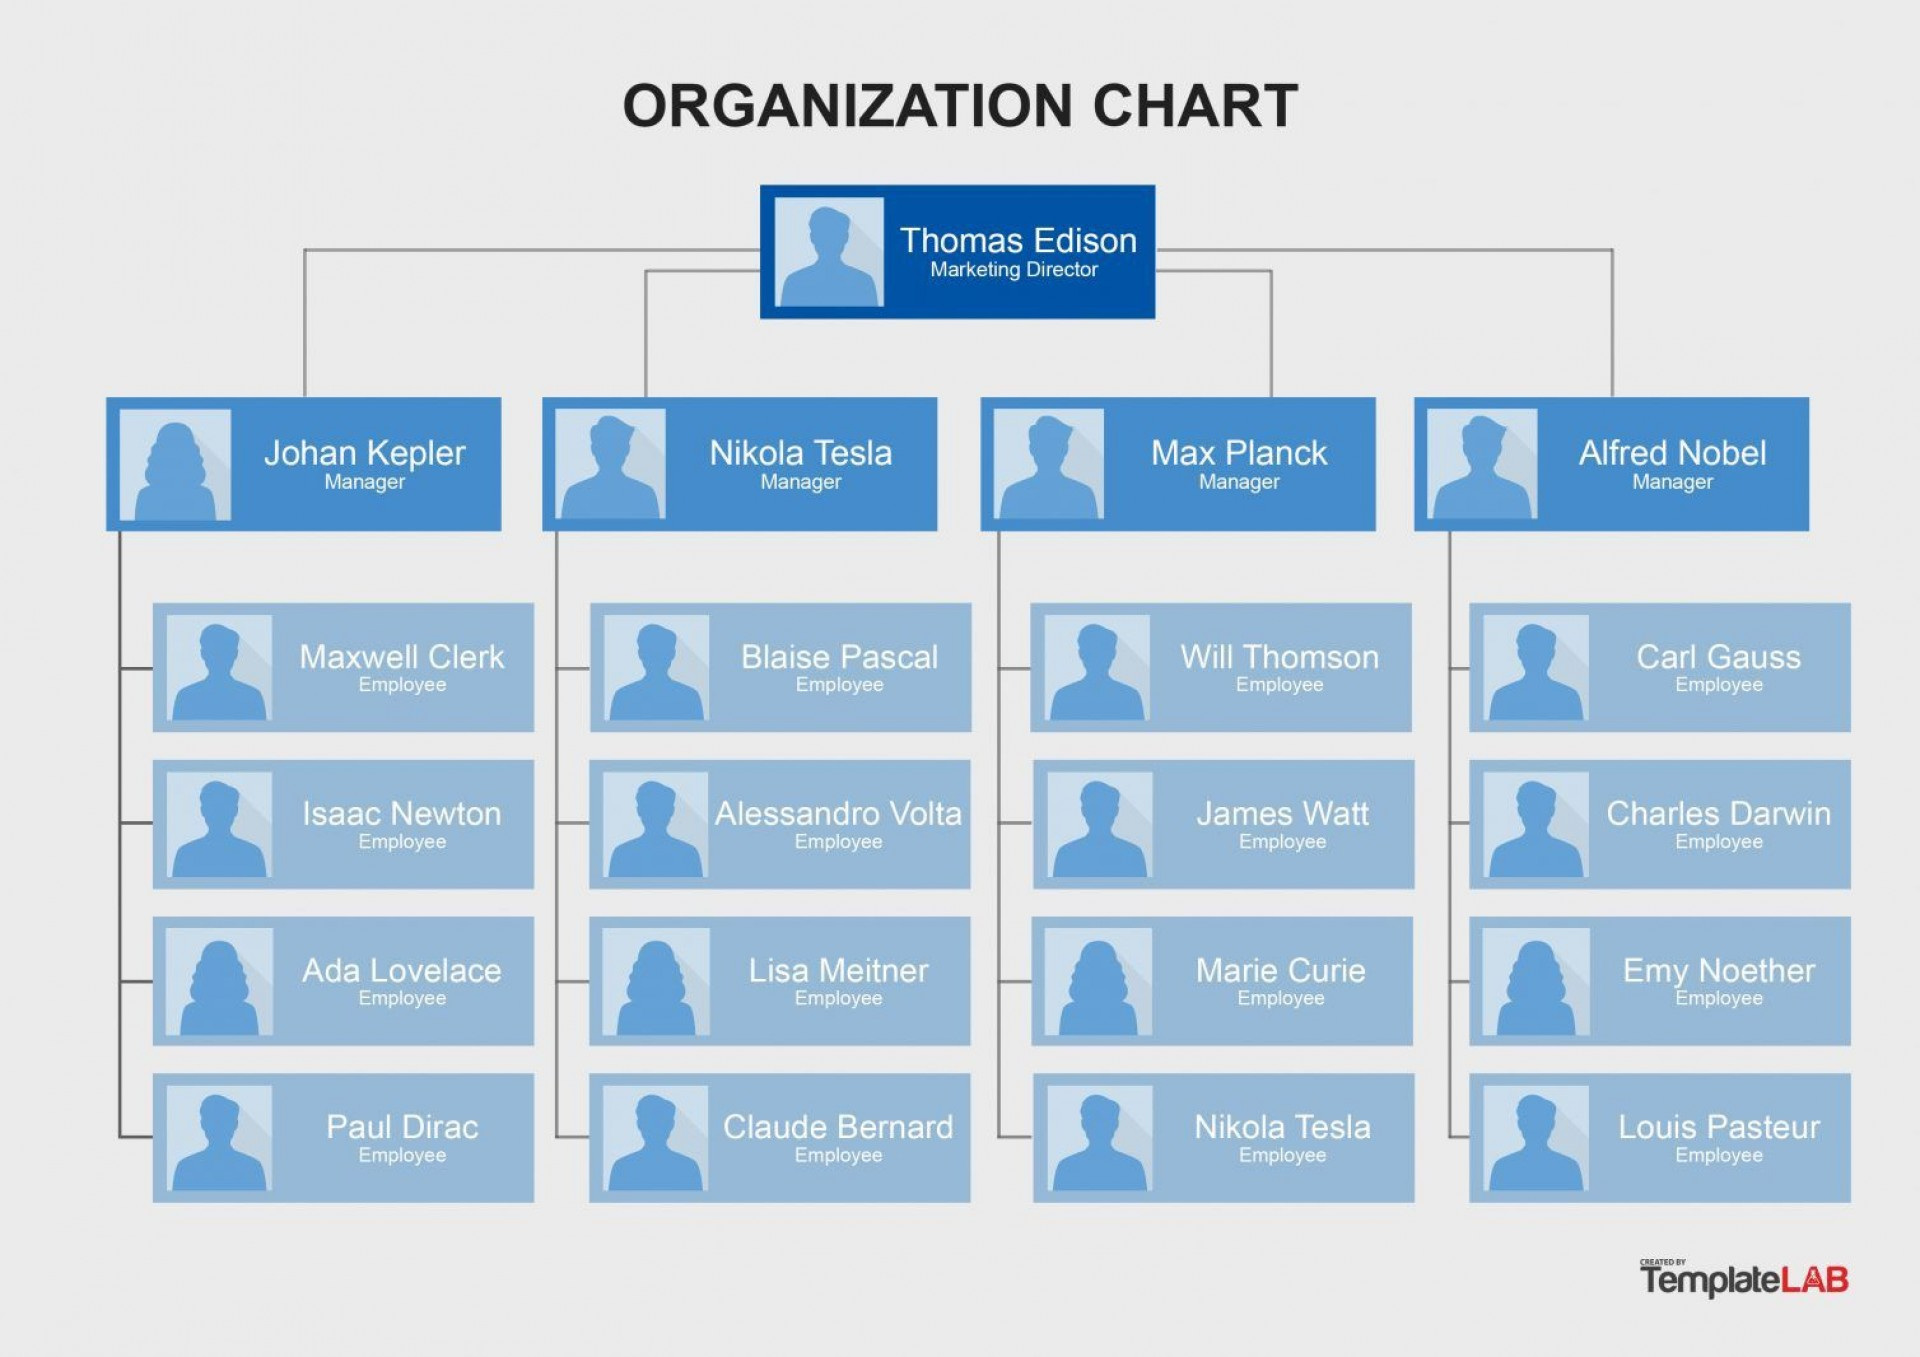 007 Stupendou Organization Chart Template Excel Download High Definition  Org Organizational Format In1920